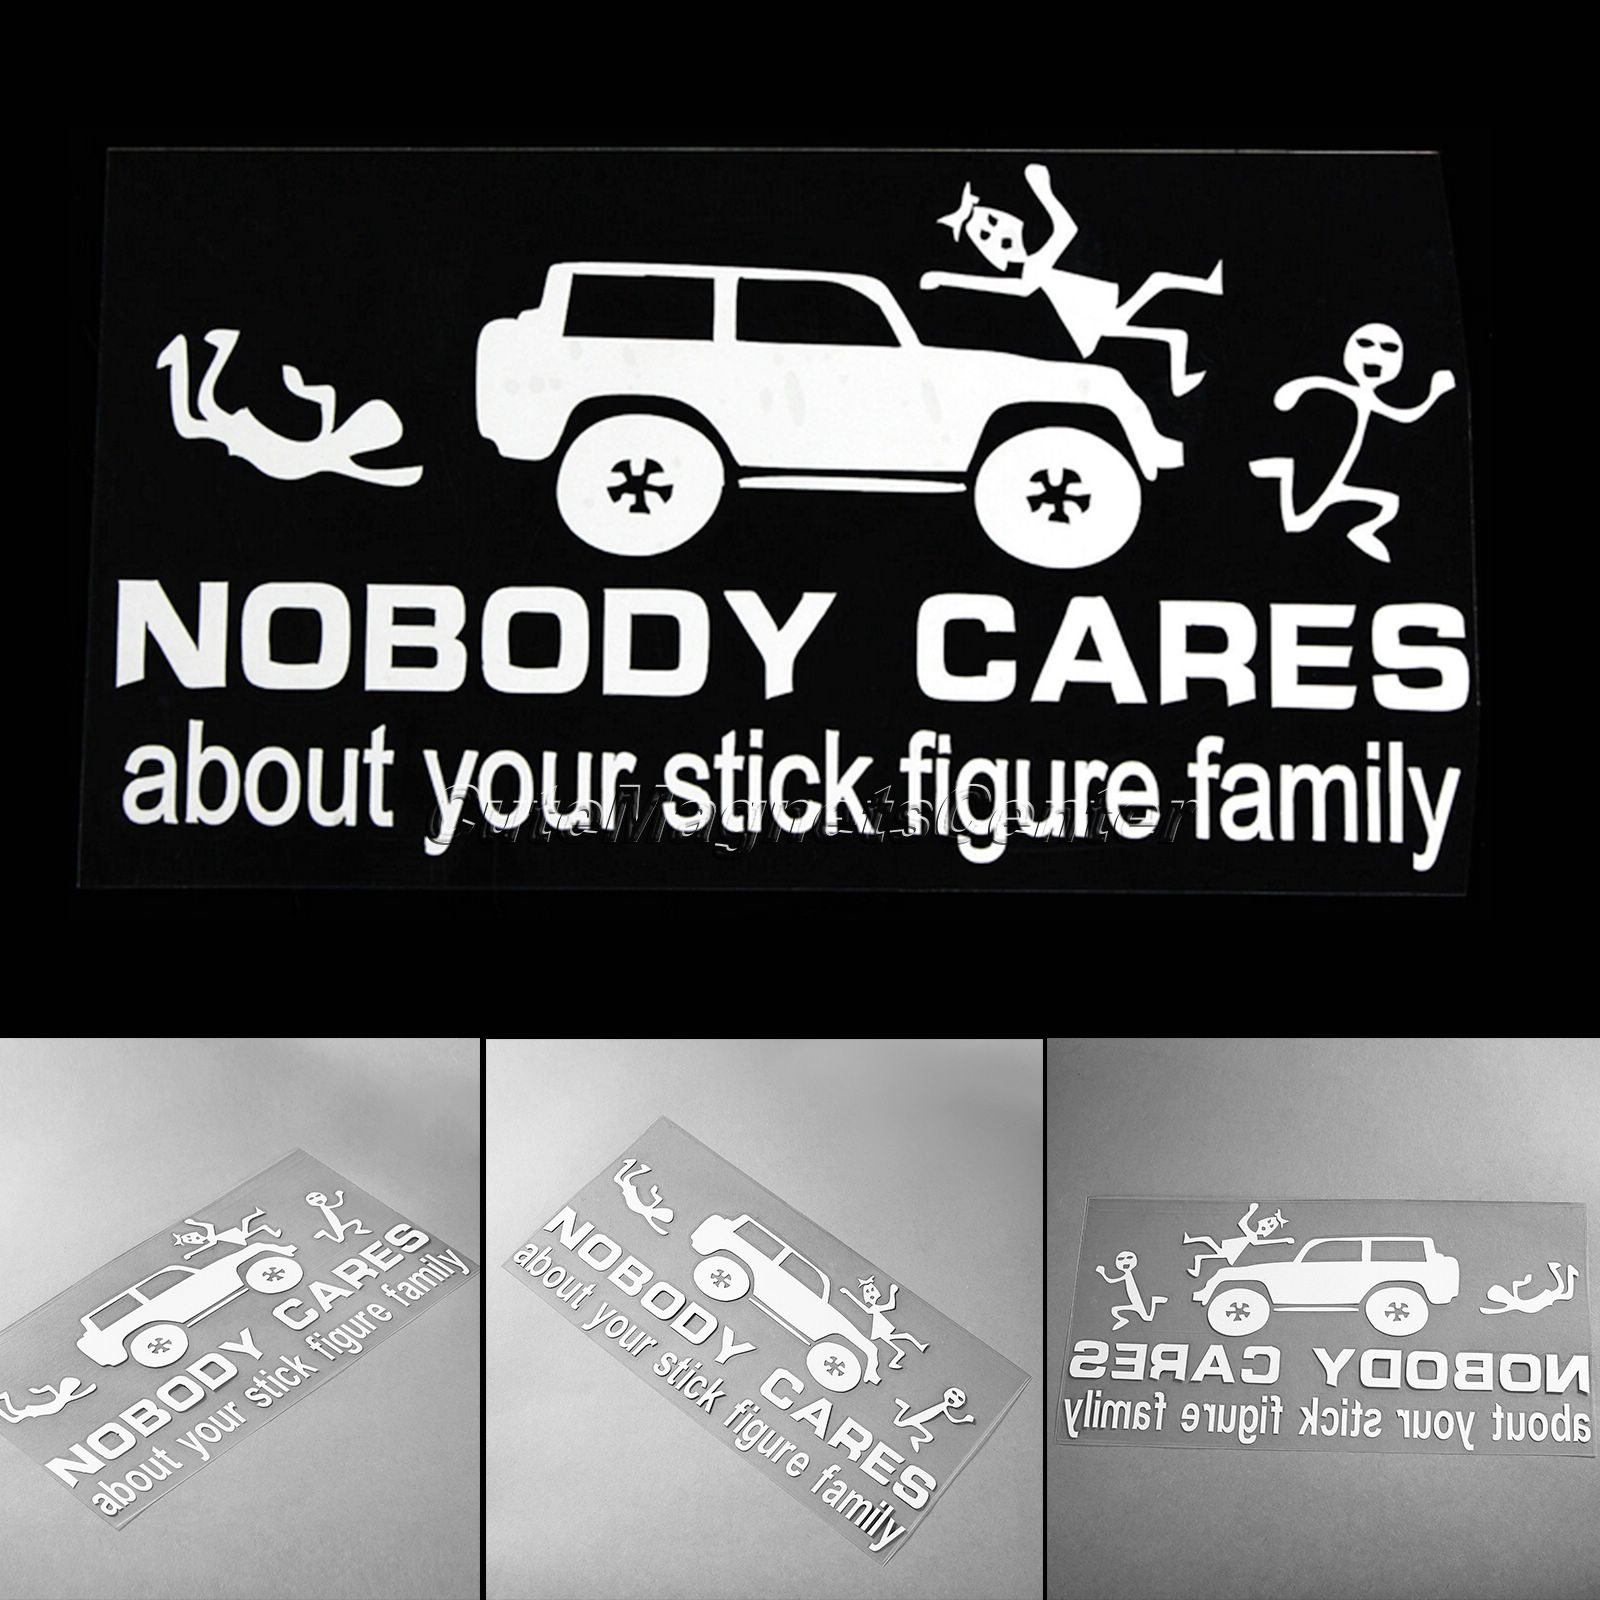 Pc Car Sticker Styling NOBODY CARES ABOUT YOUR STICK FIGURE - Family decal stickers for carscar truck van vehicle window family figures vinyl decal sticker